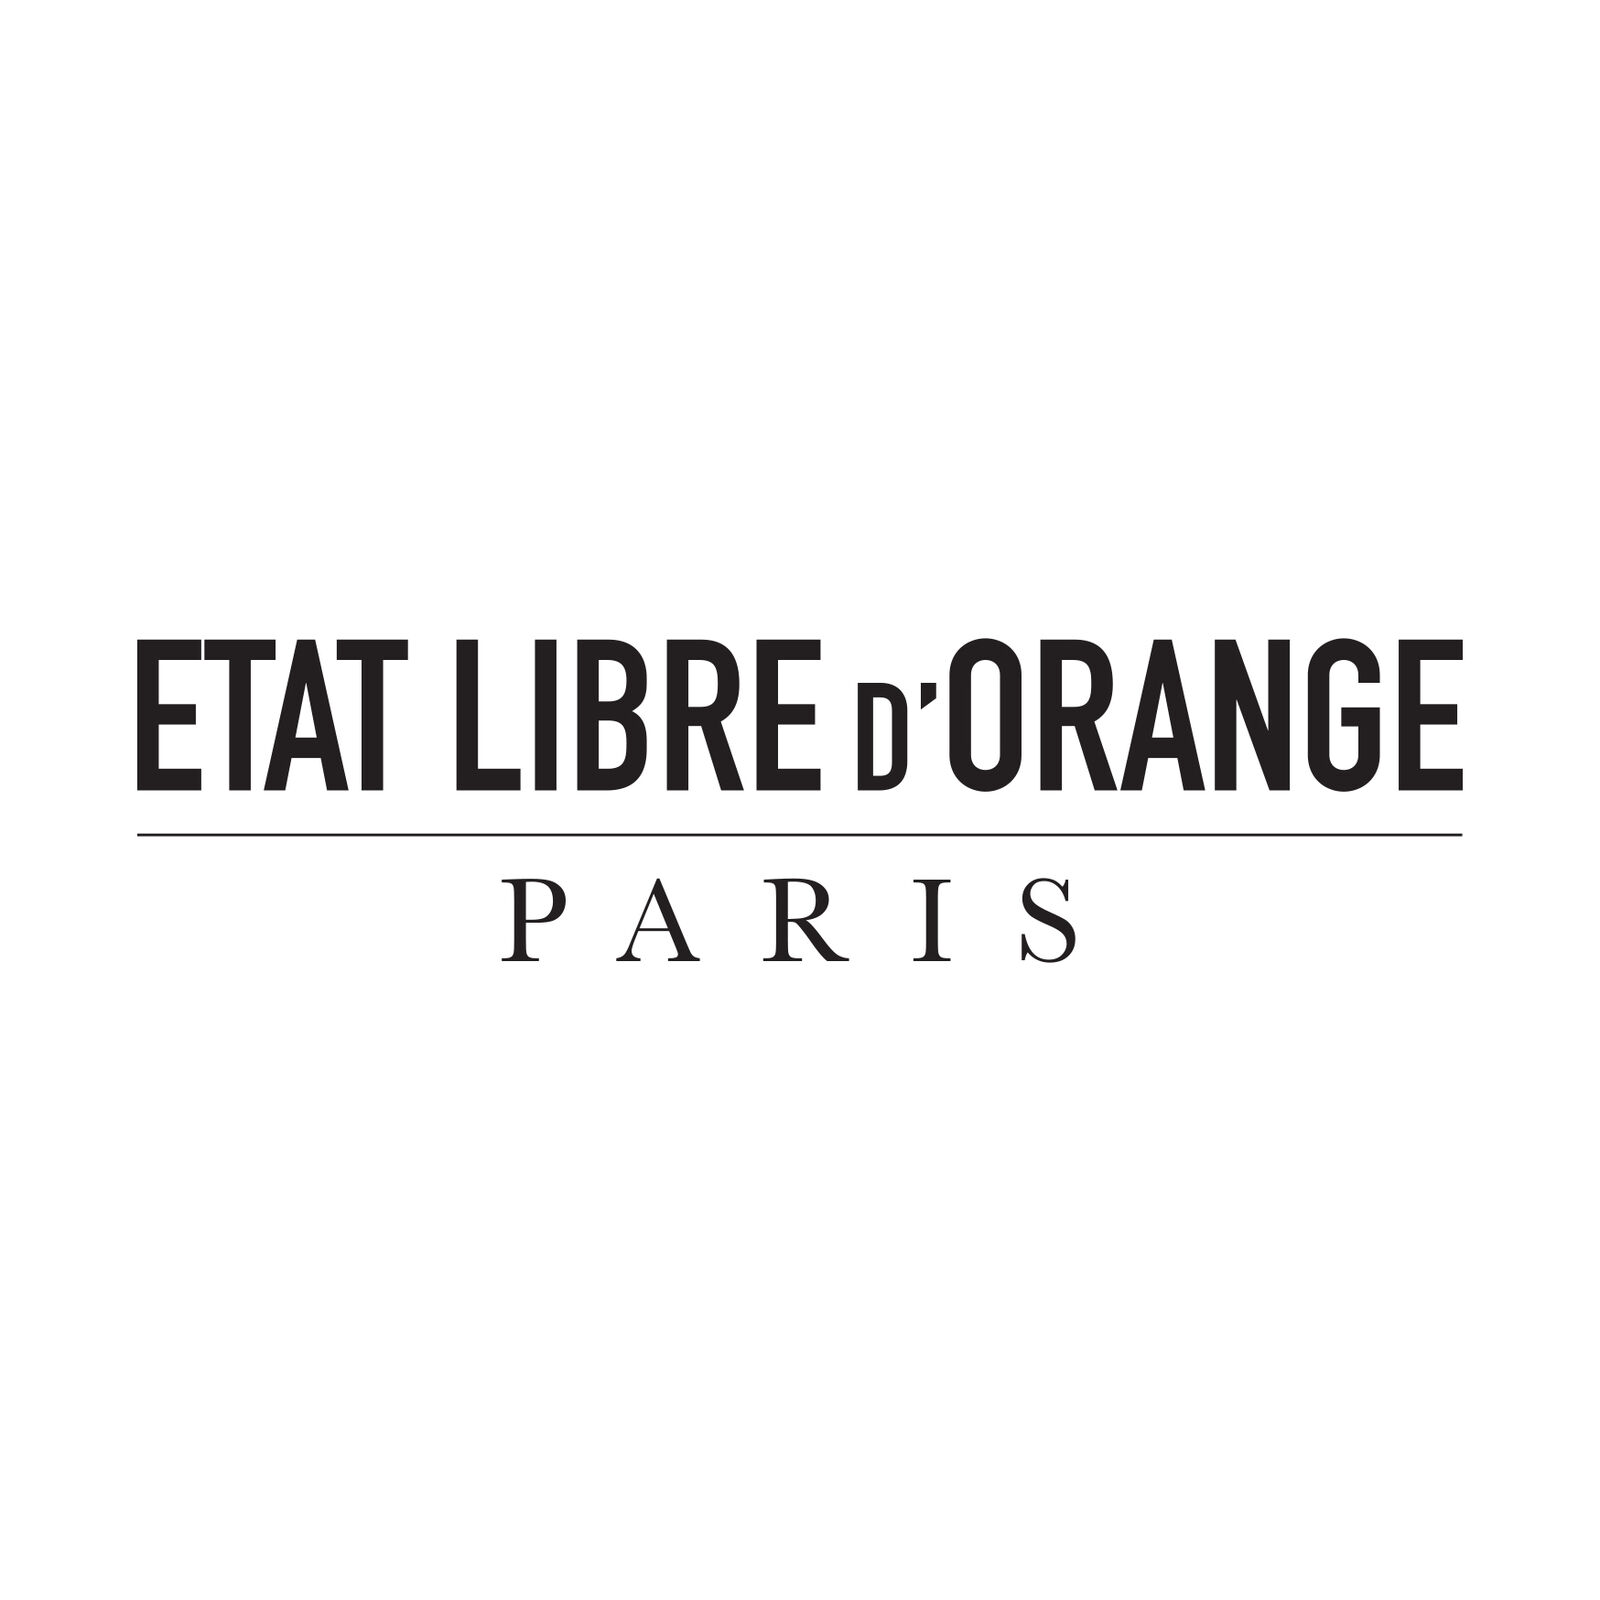 Etat Libre d'Orange (Image 1)